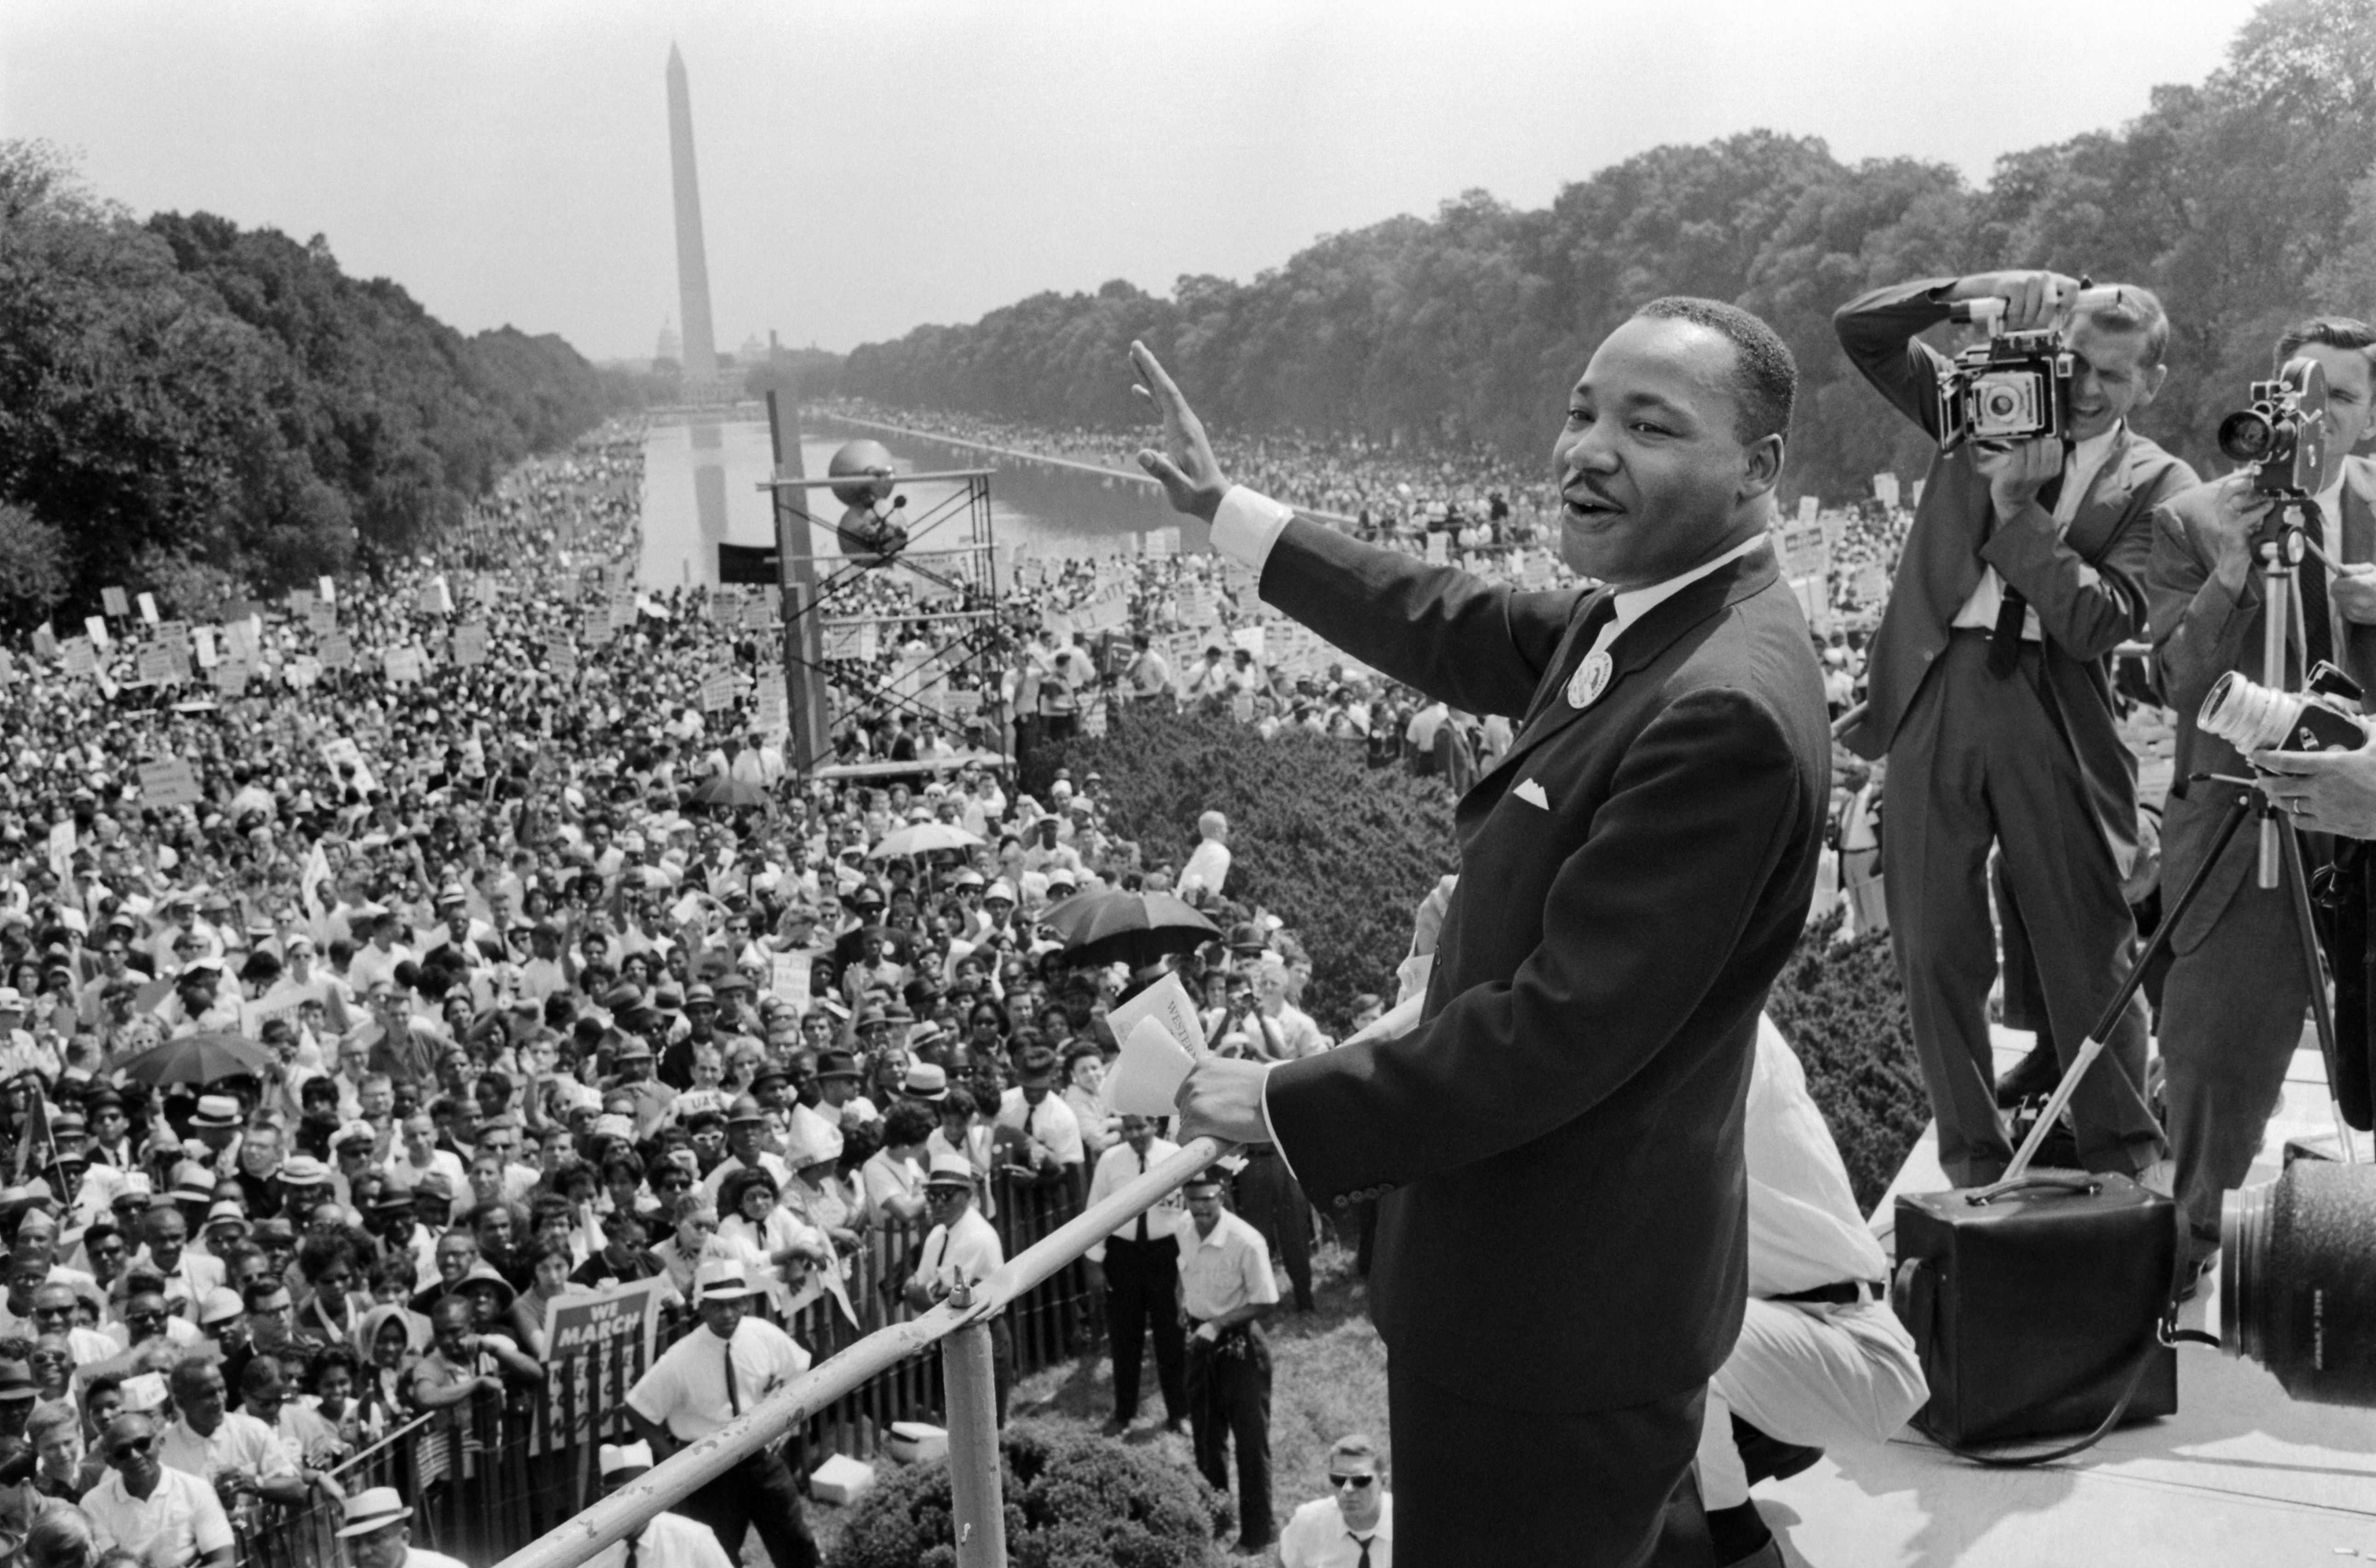 Martin Luther King waves to supporters on the Mall in Washington DC during the March on Washington, 28 August 1963. (Photo by AFP/Getty Images)